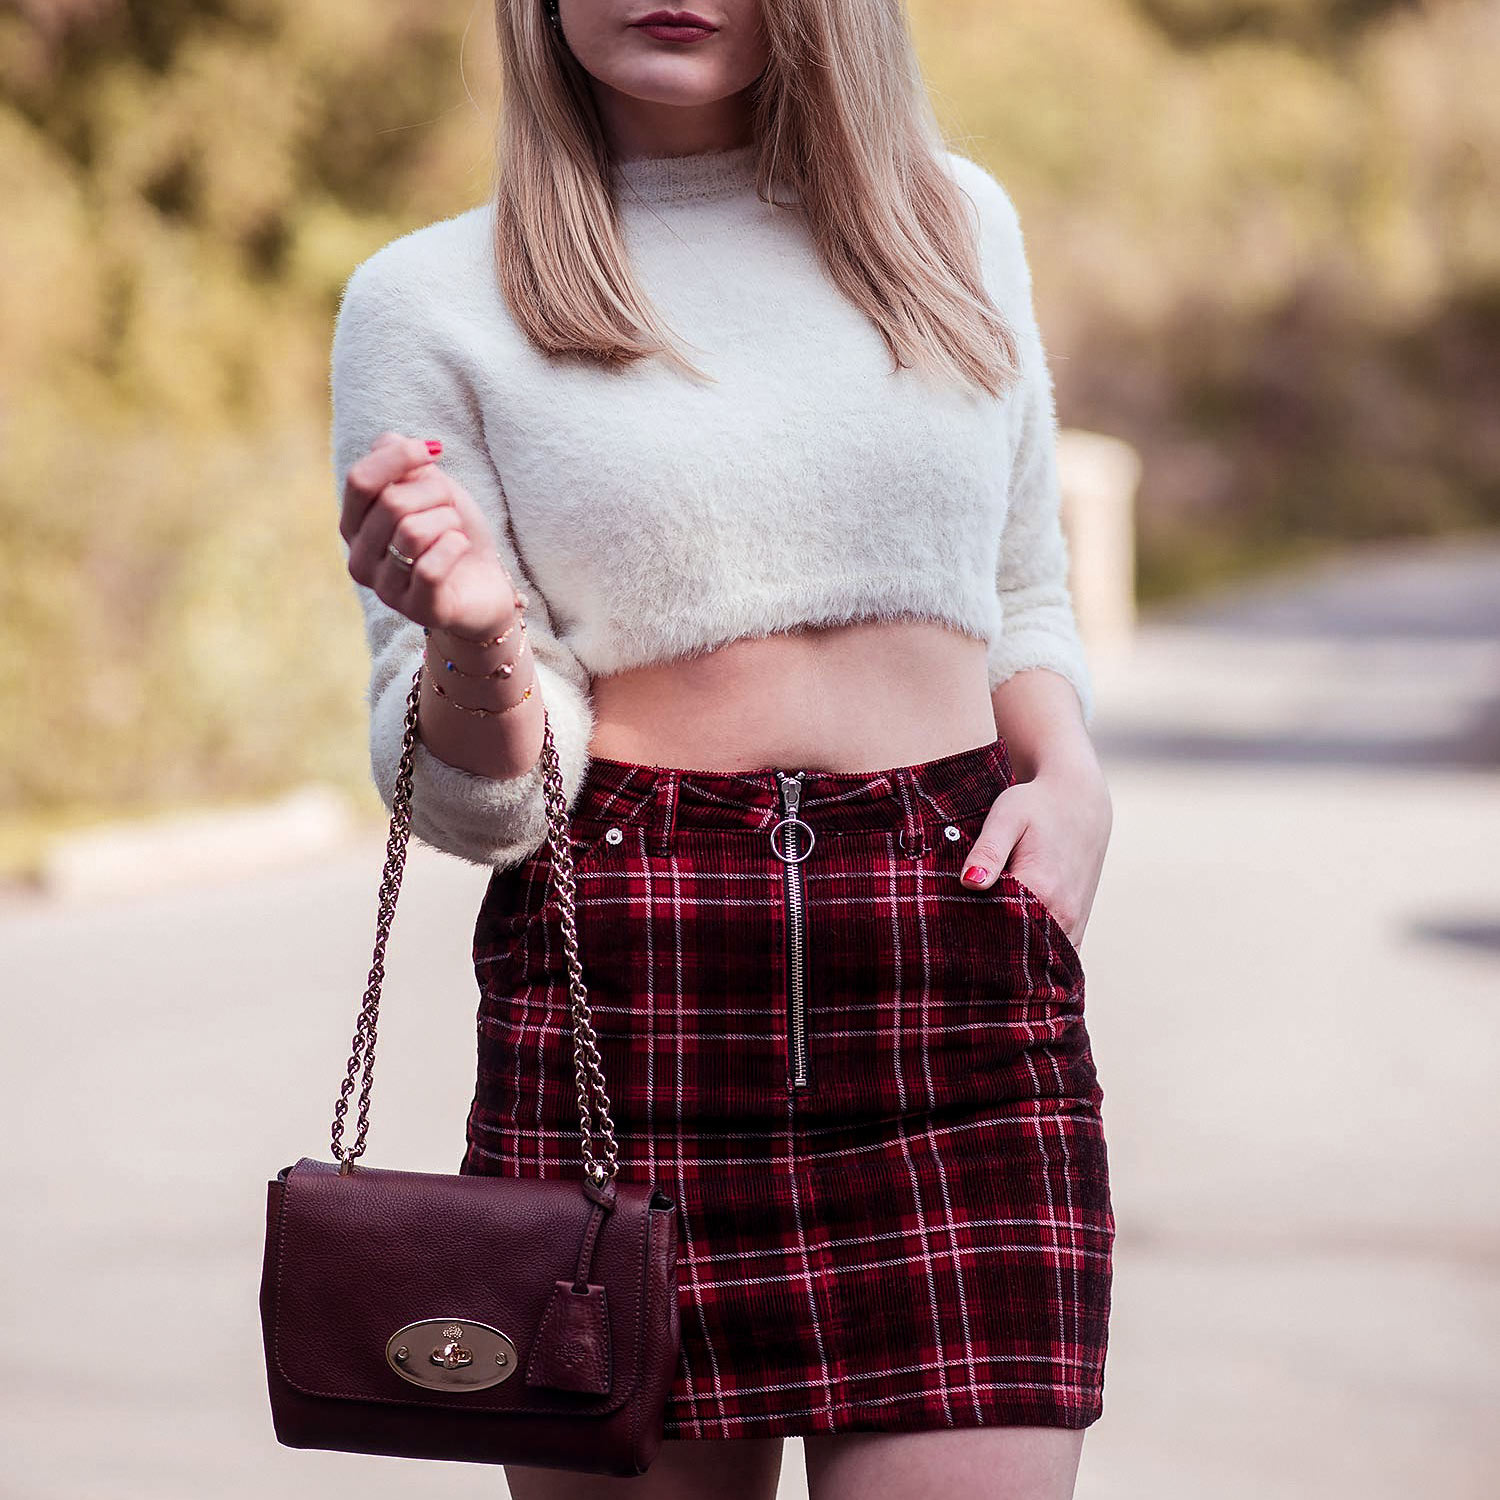 The Tartan Corduroy Skirt With Boots